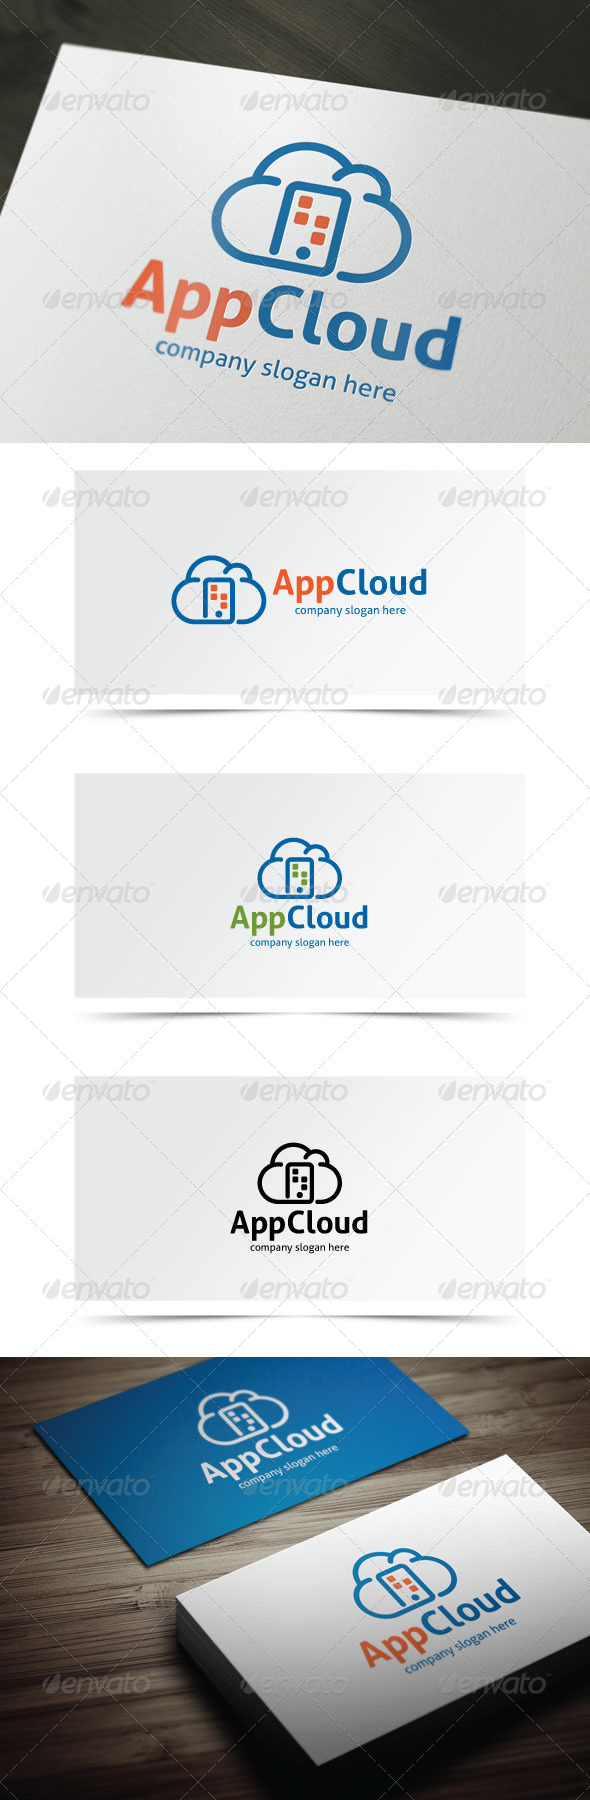 GraphicRiver App Cloud 6852734